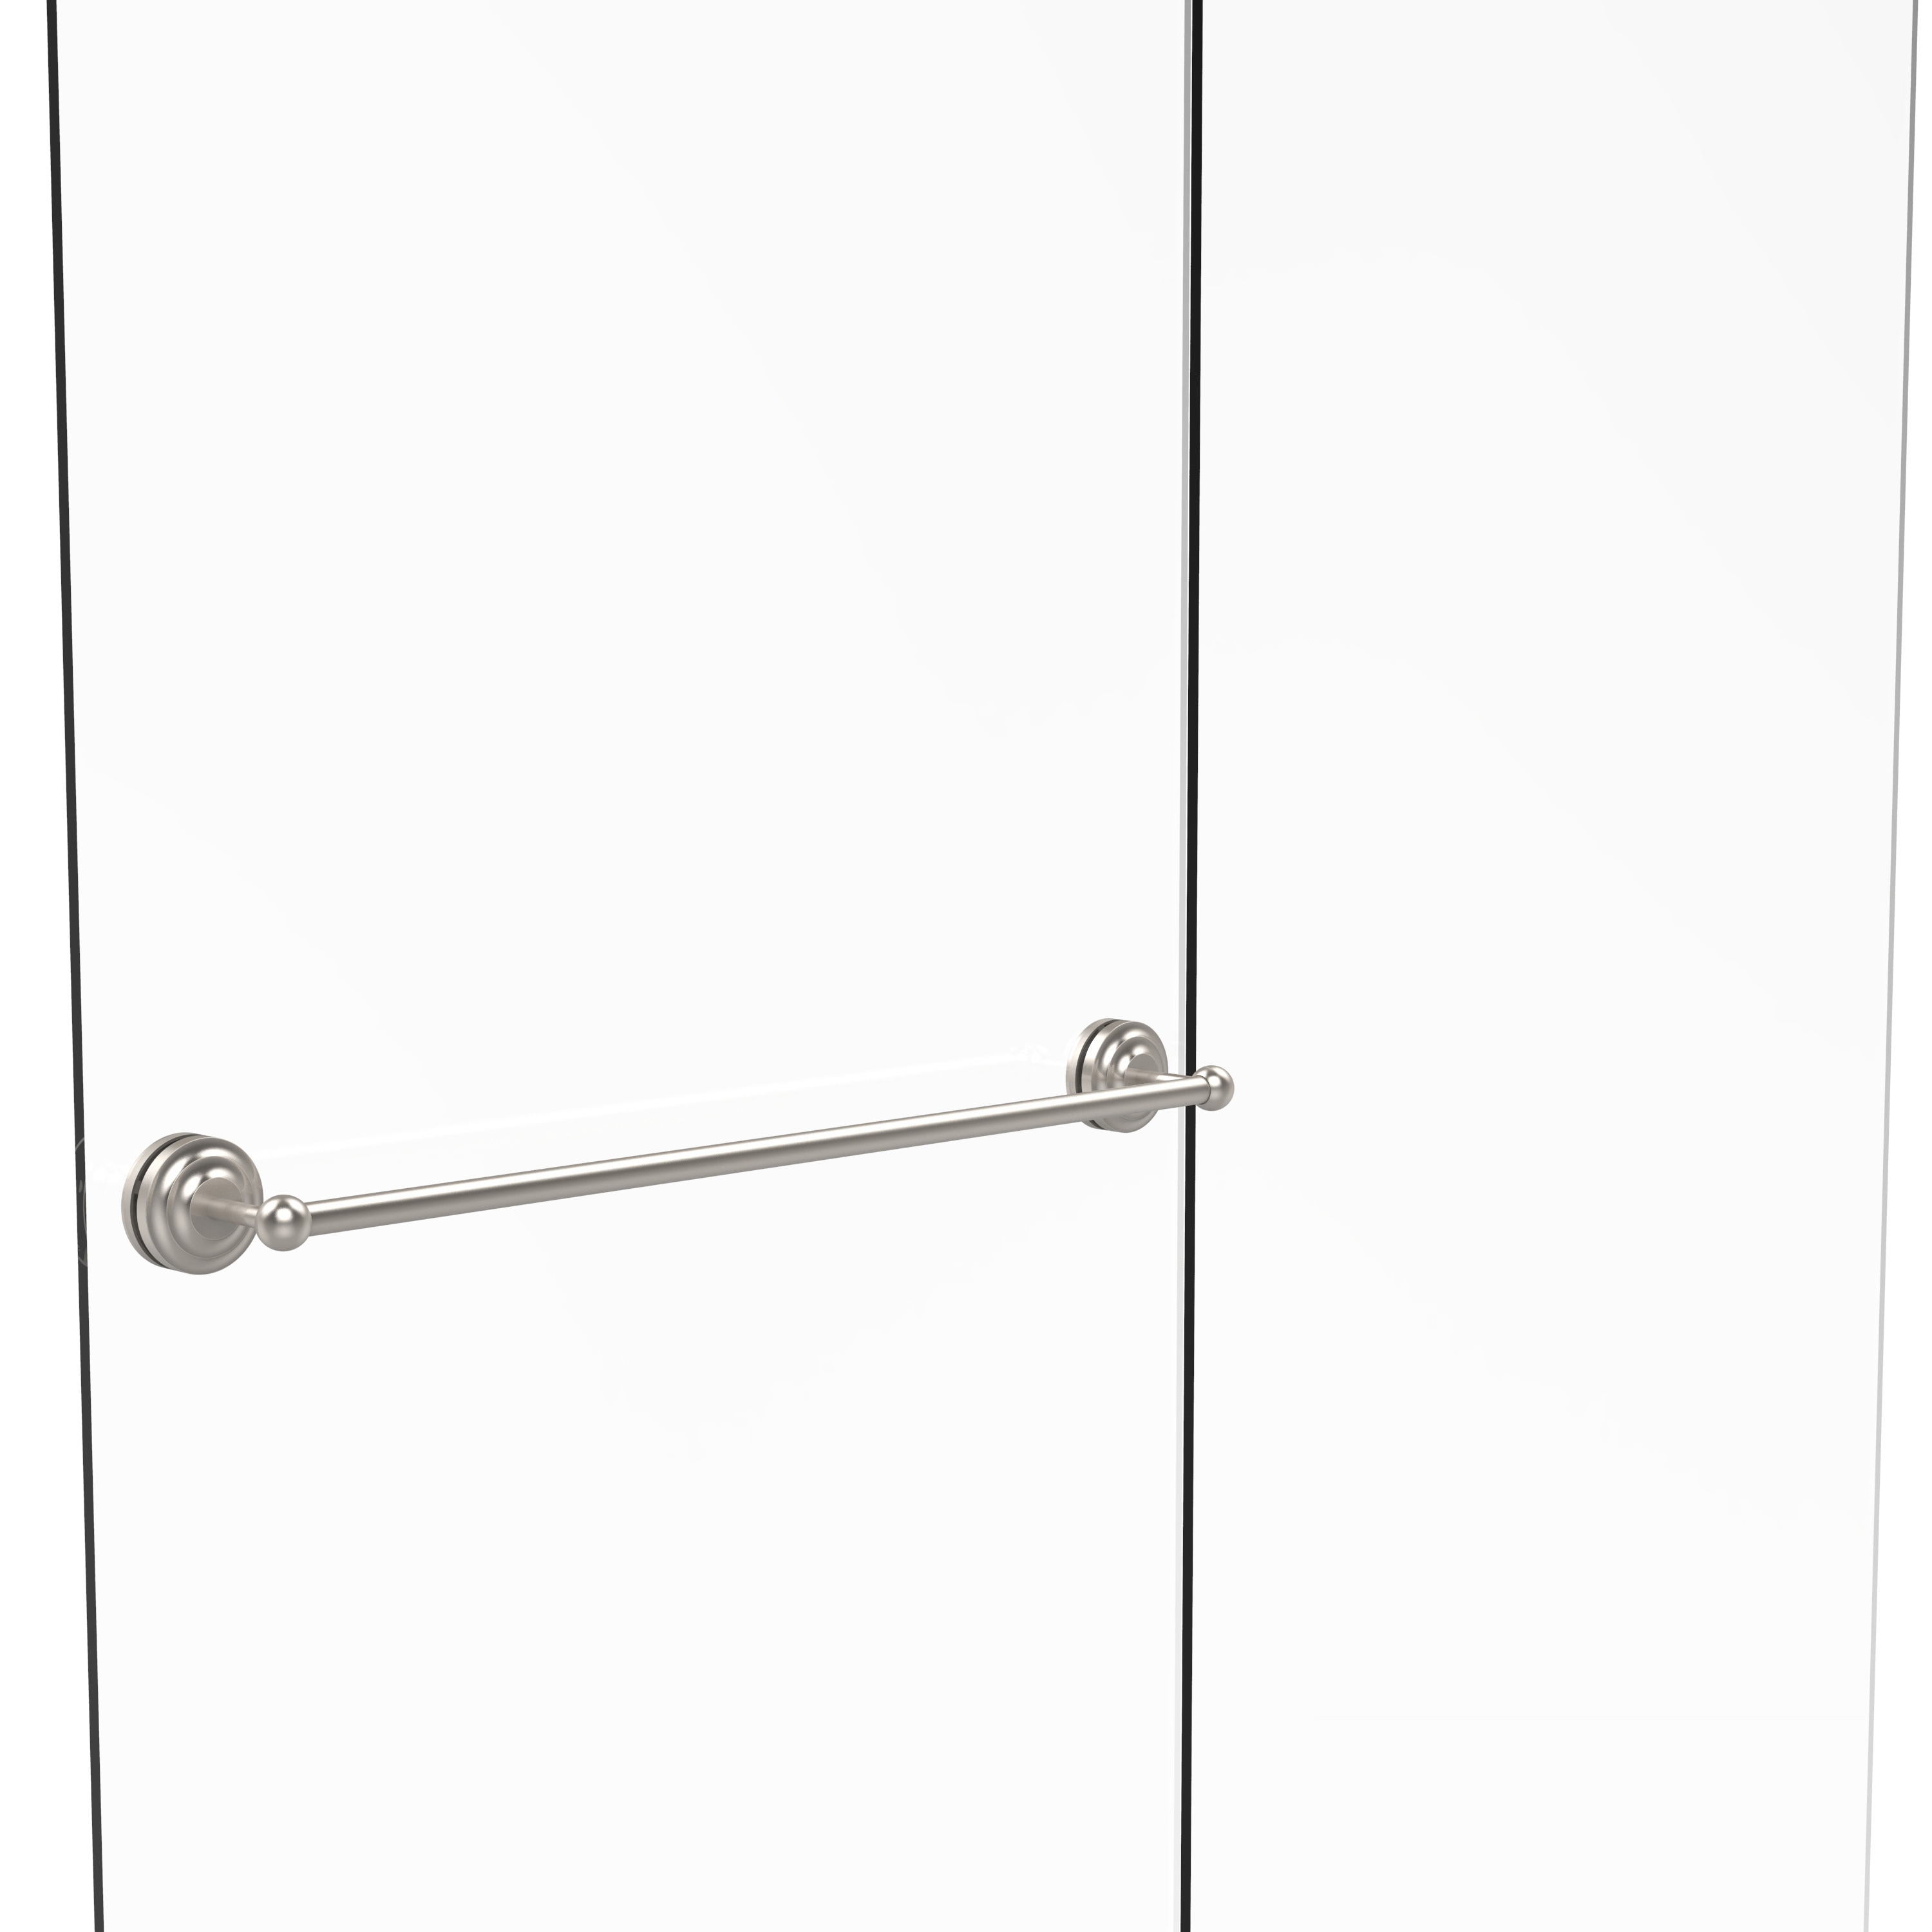 Allied Brass Que New Collection 30-inch Shower Door Towel Bar